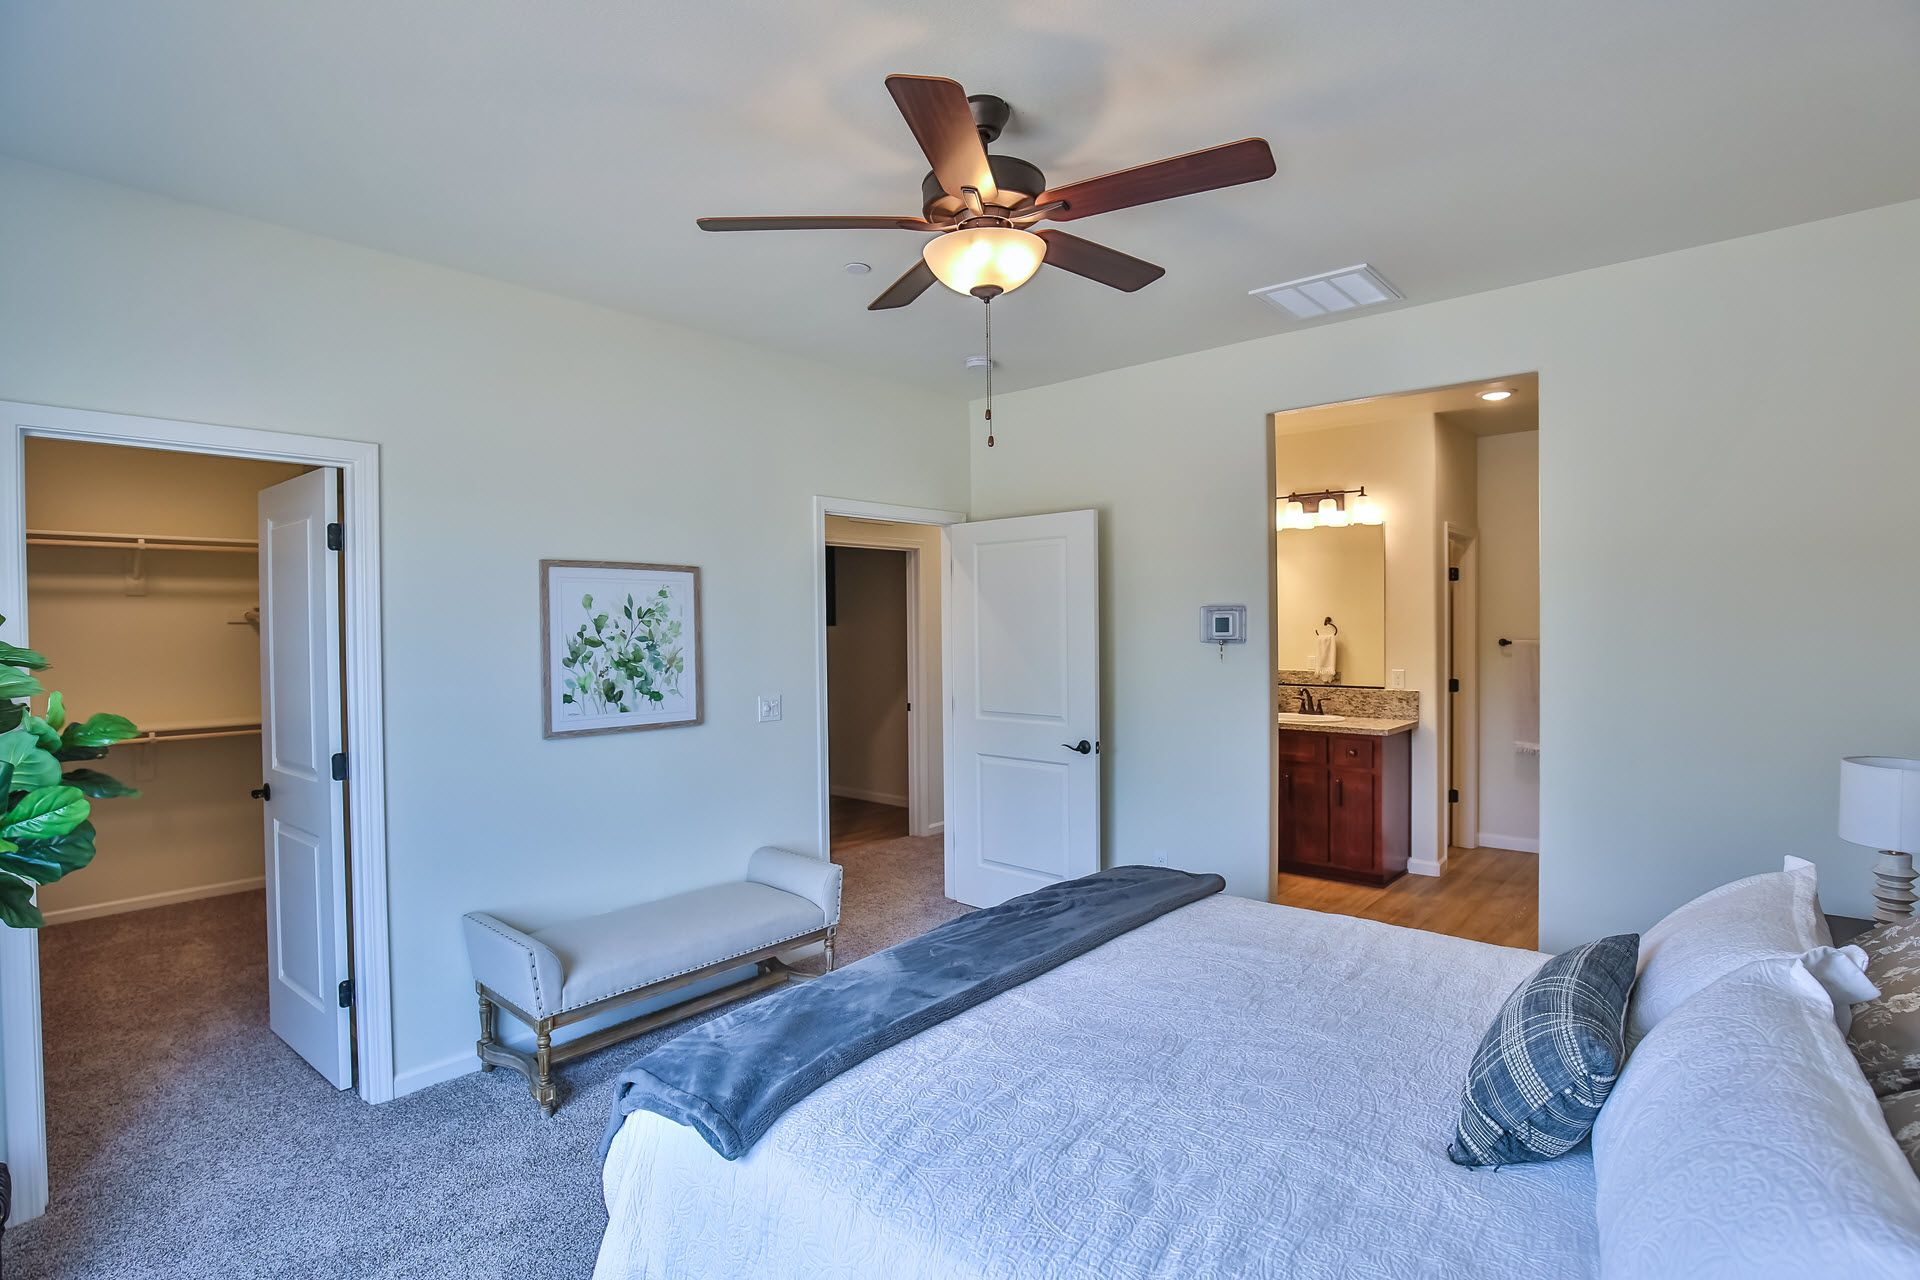 Bedroom featured in the Residence 1665 By Village by the Ponds  in Sacramento, CA